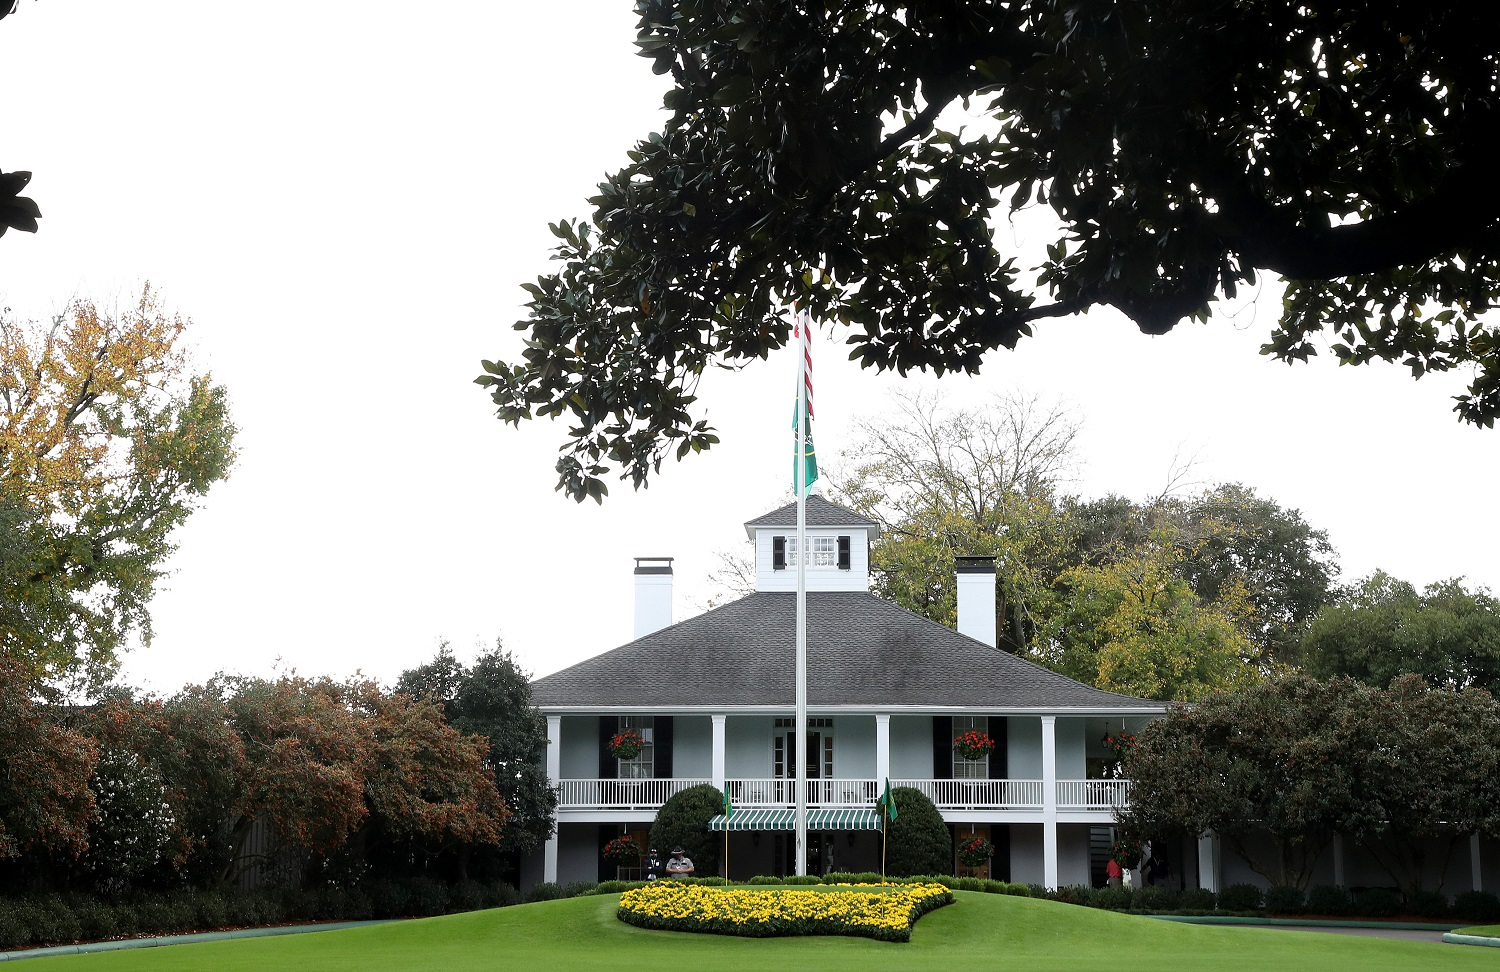 Round 1 of The Masters begins Thursday at 8 a.m.